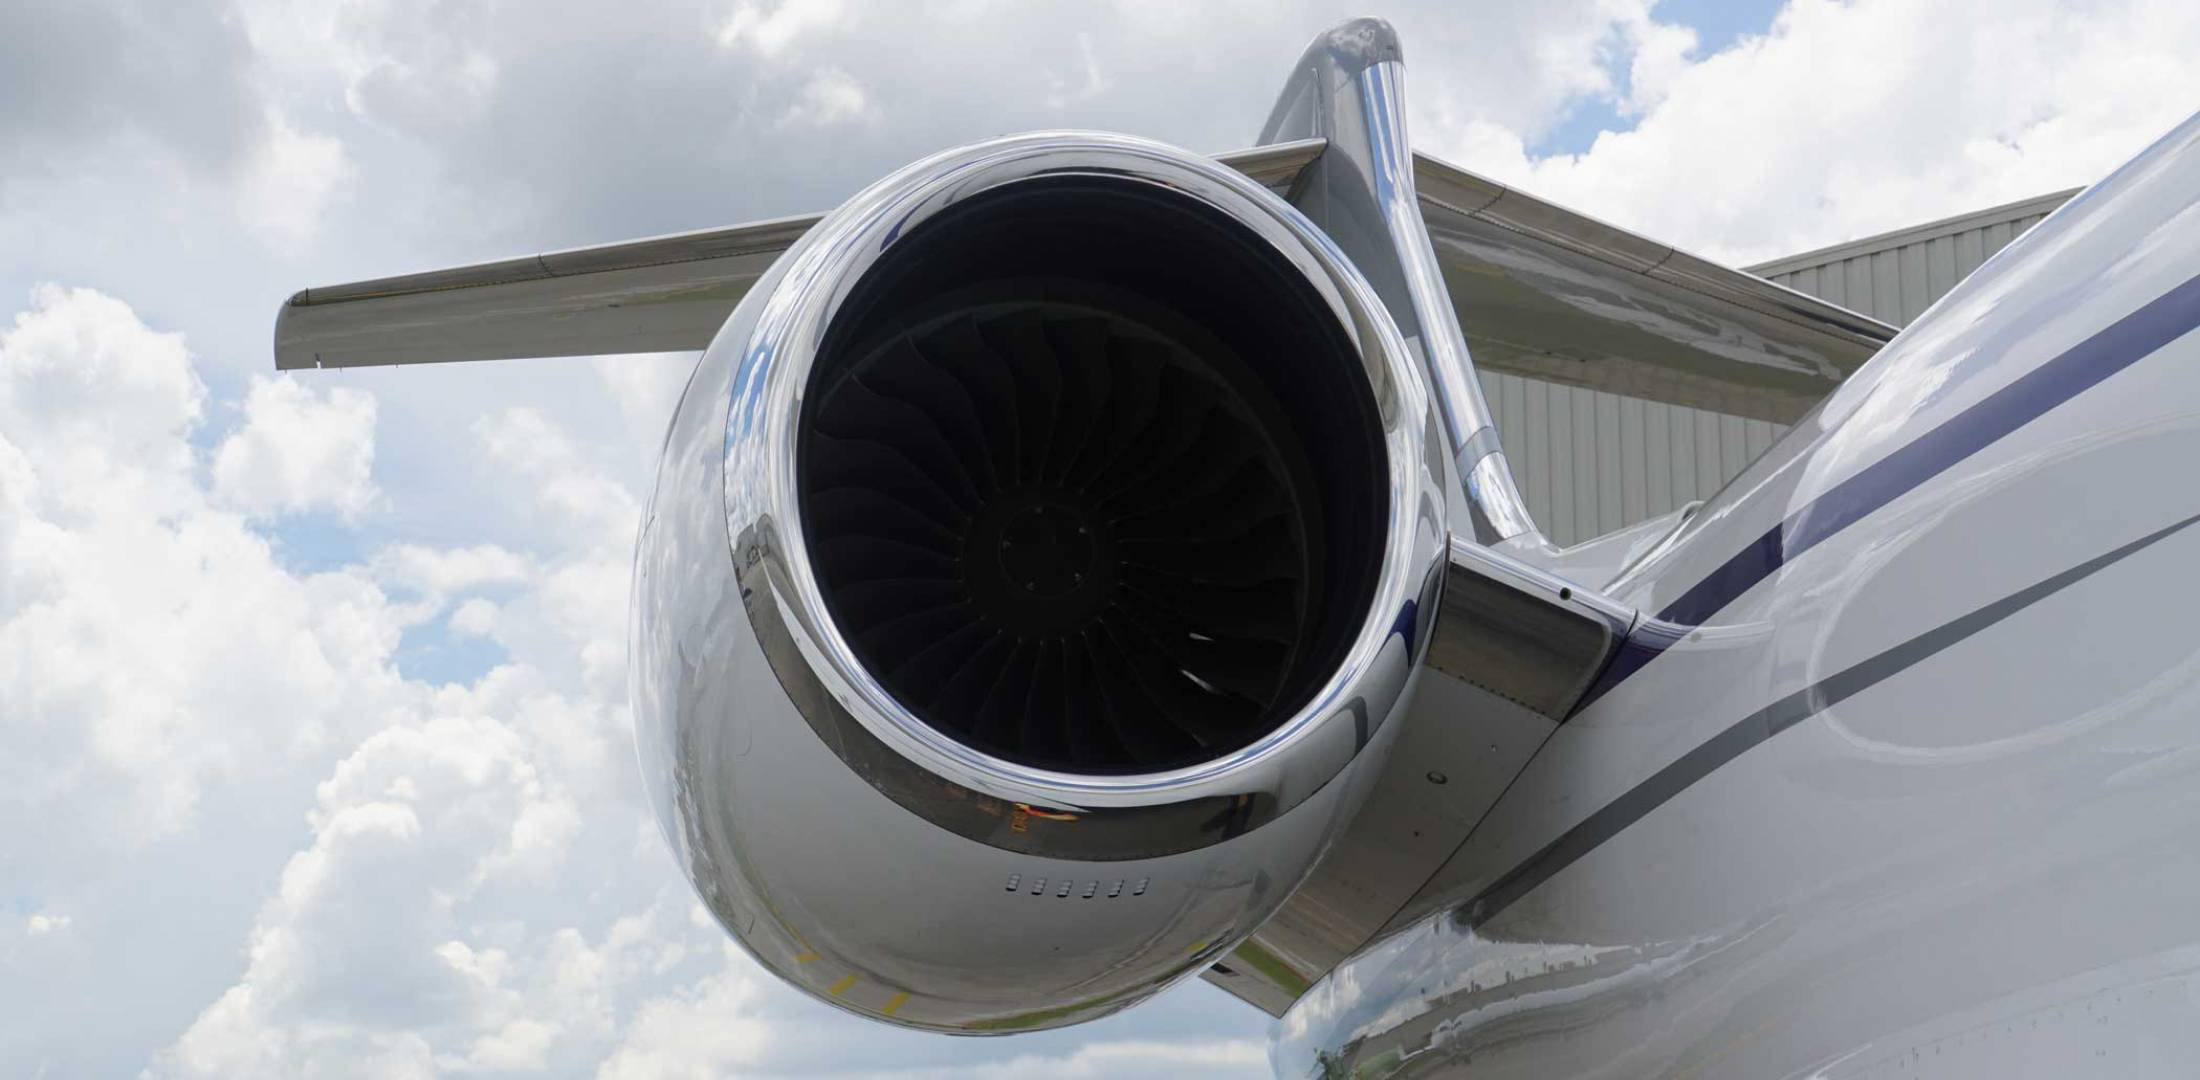 PW800 engine on a G500